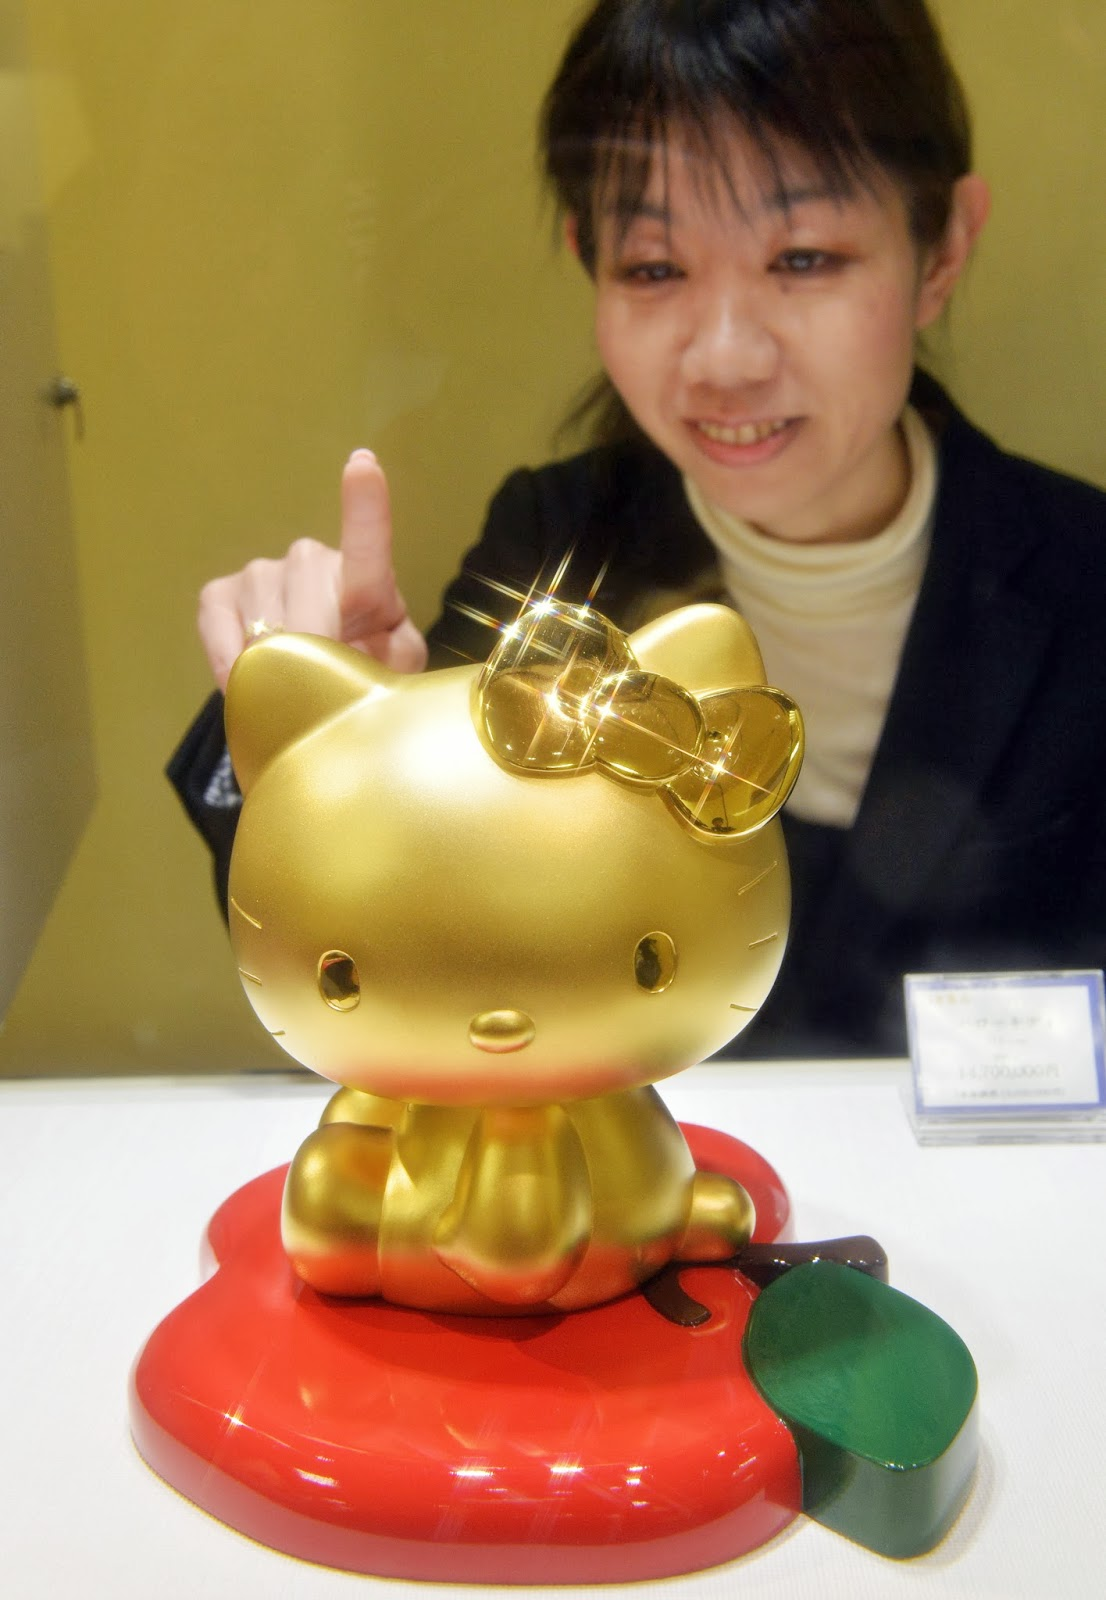 Bridal robe, Business, Chocolate, Economy, Exhibition, Gold, Gold Expo, Gold made products, Hello Kitty doll, Japan, Mika Kano, Million Yen, Panda, Pure Gold, Tokyo, USD, World boxing champion, Yoko Gushiken,